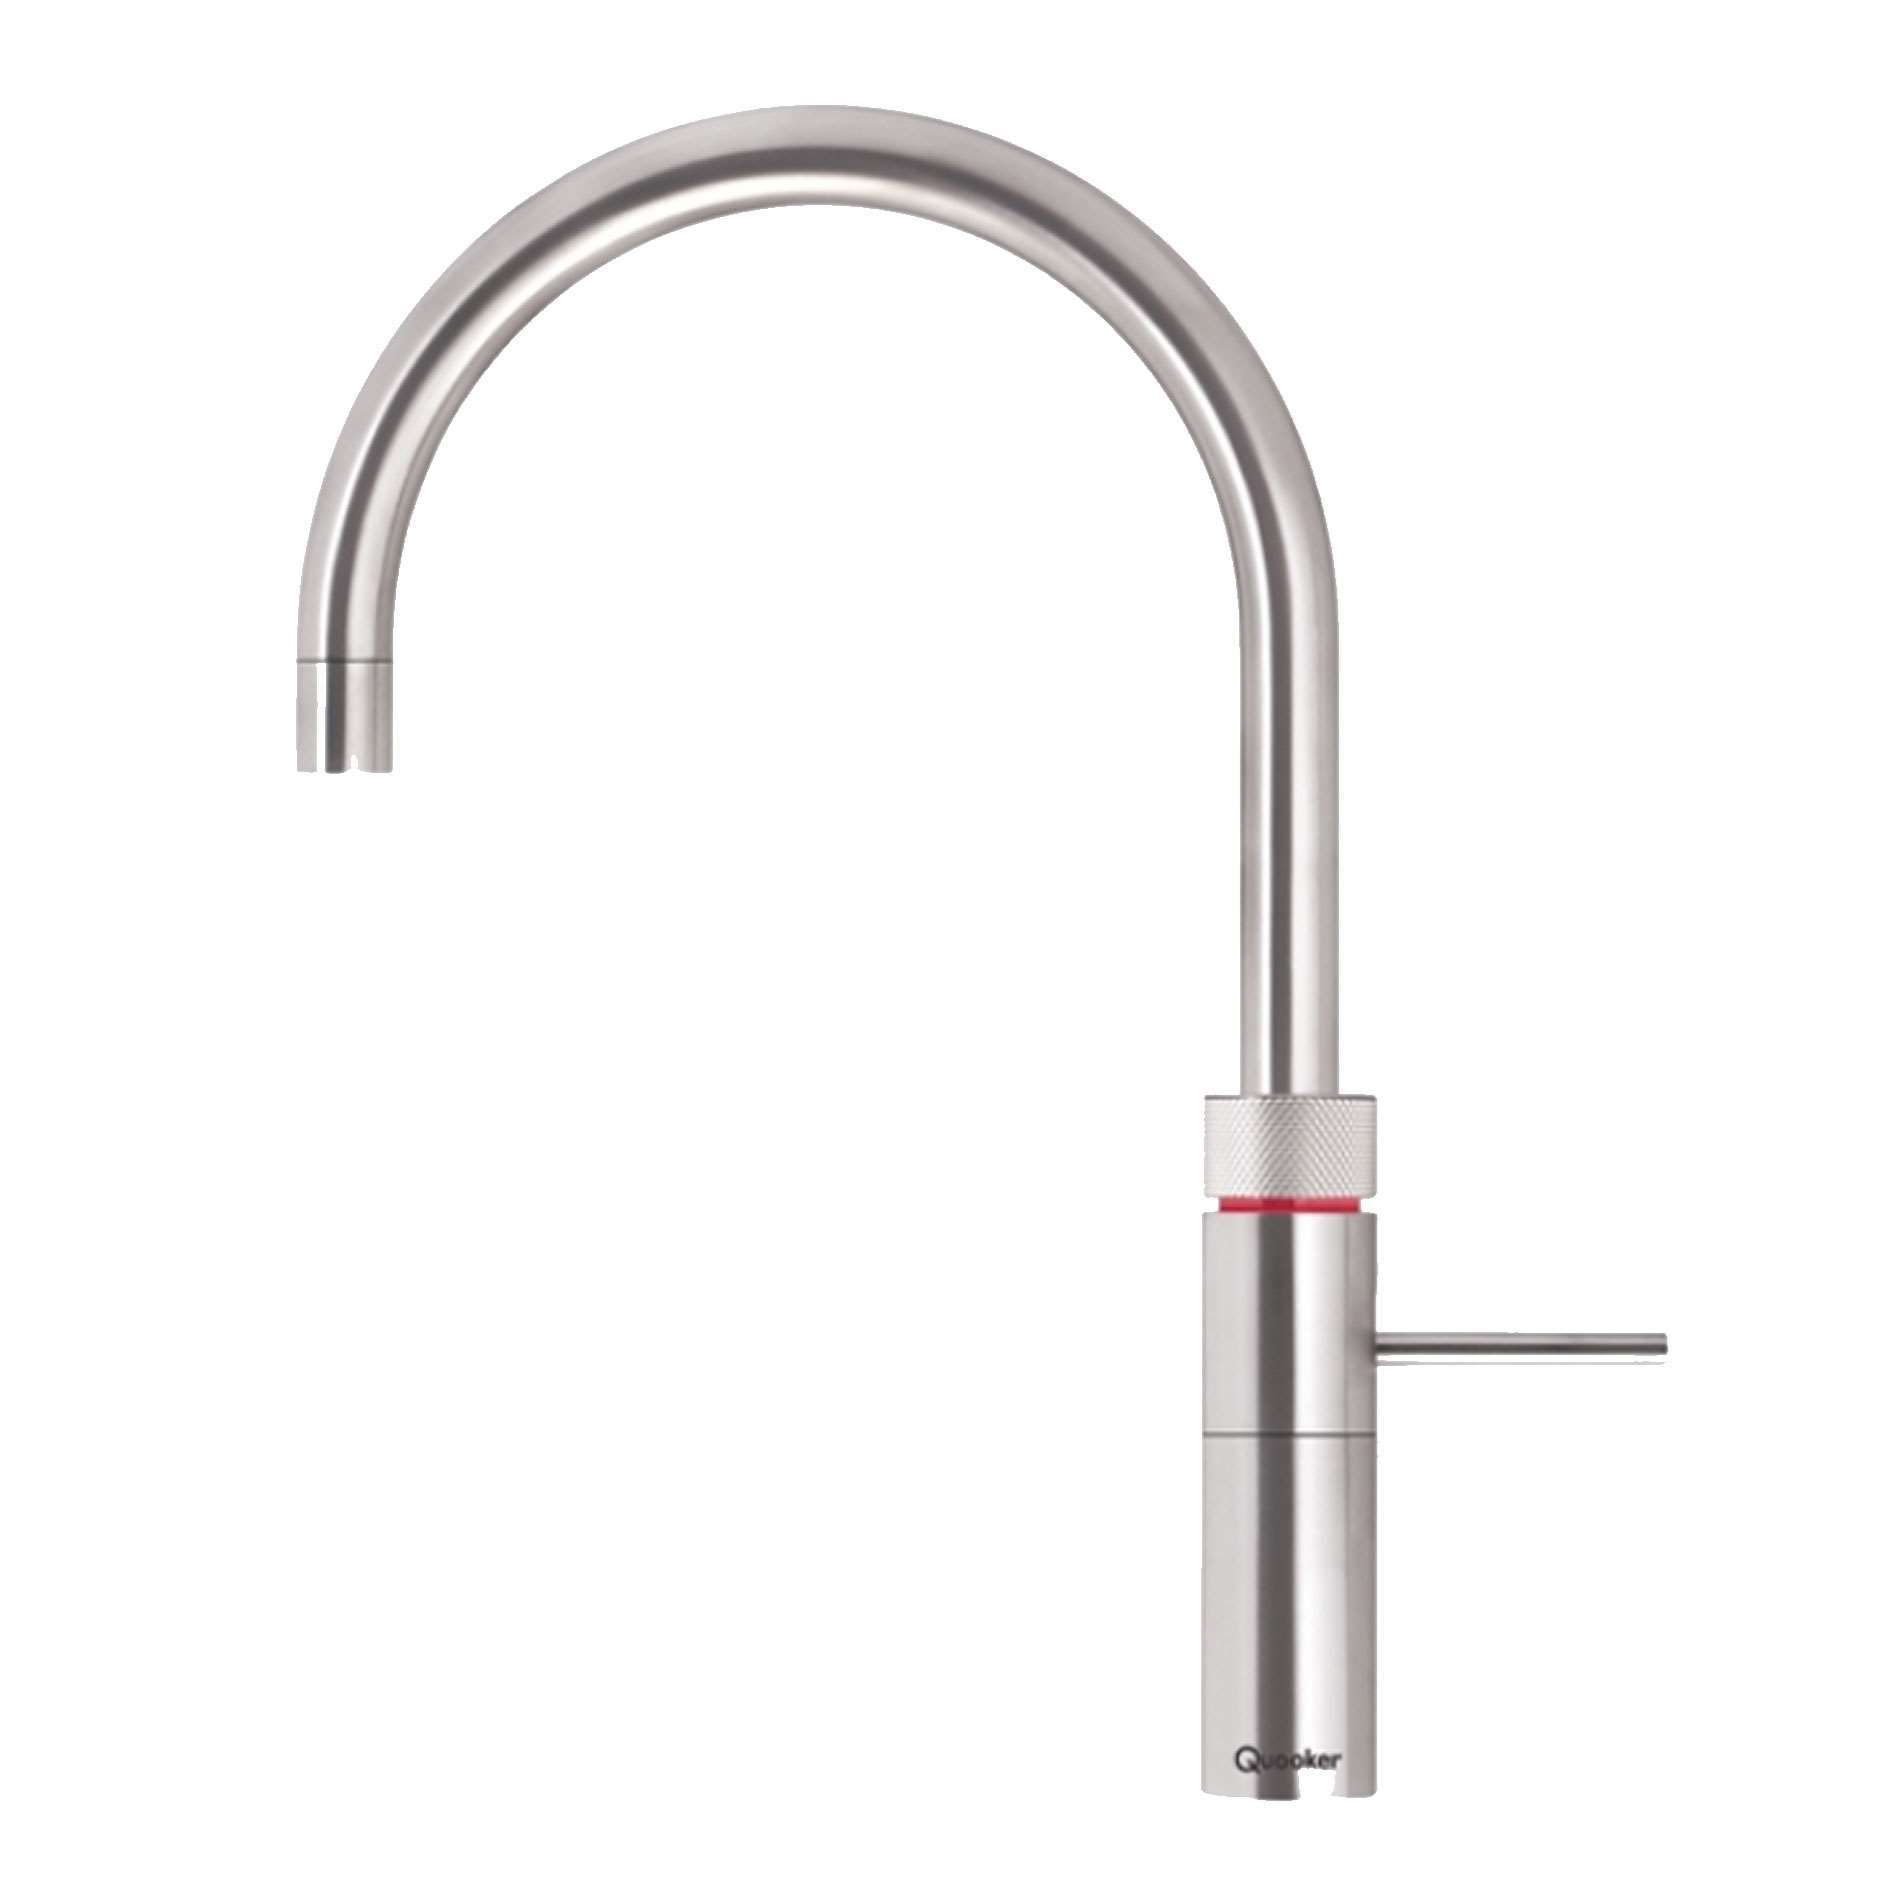 0006576_fusion-pro3-round-stainless-steel-tap.jpeg